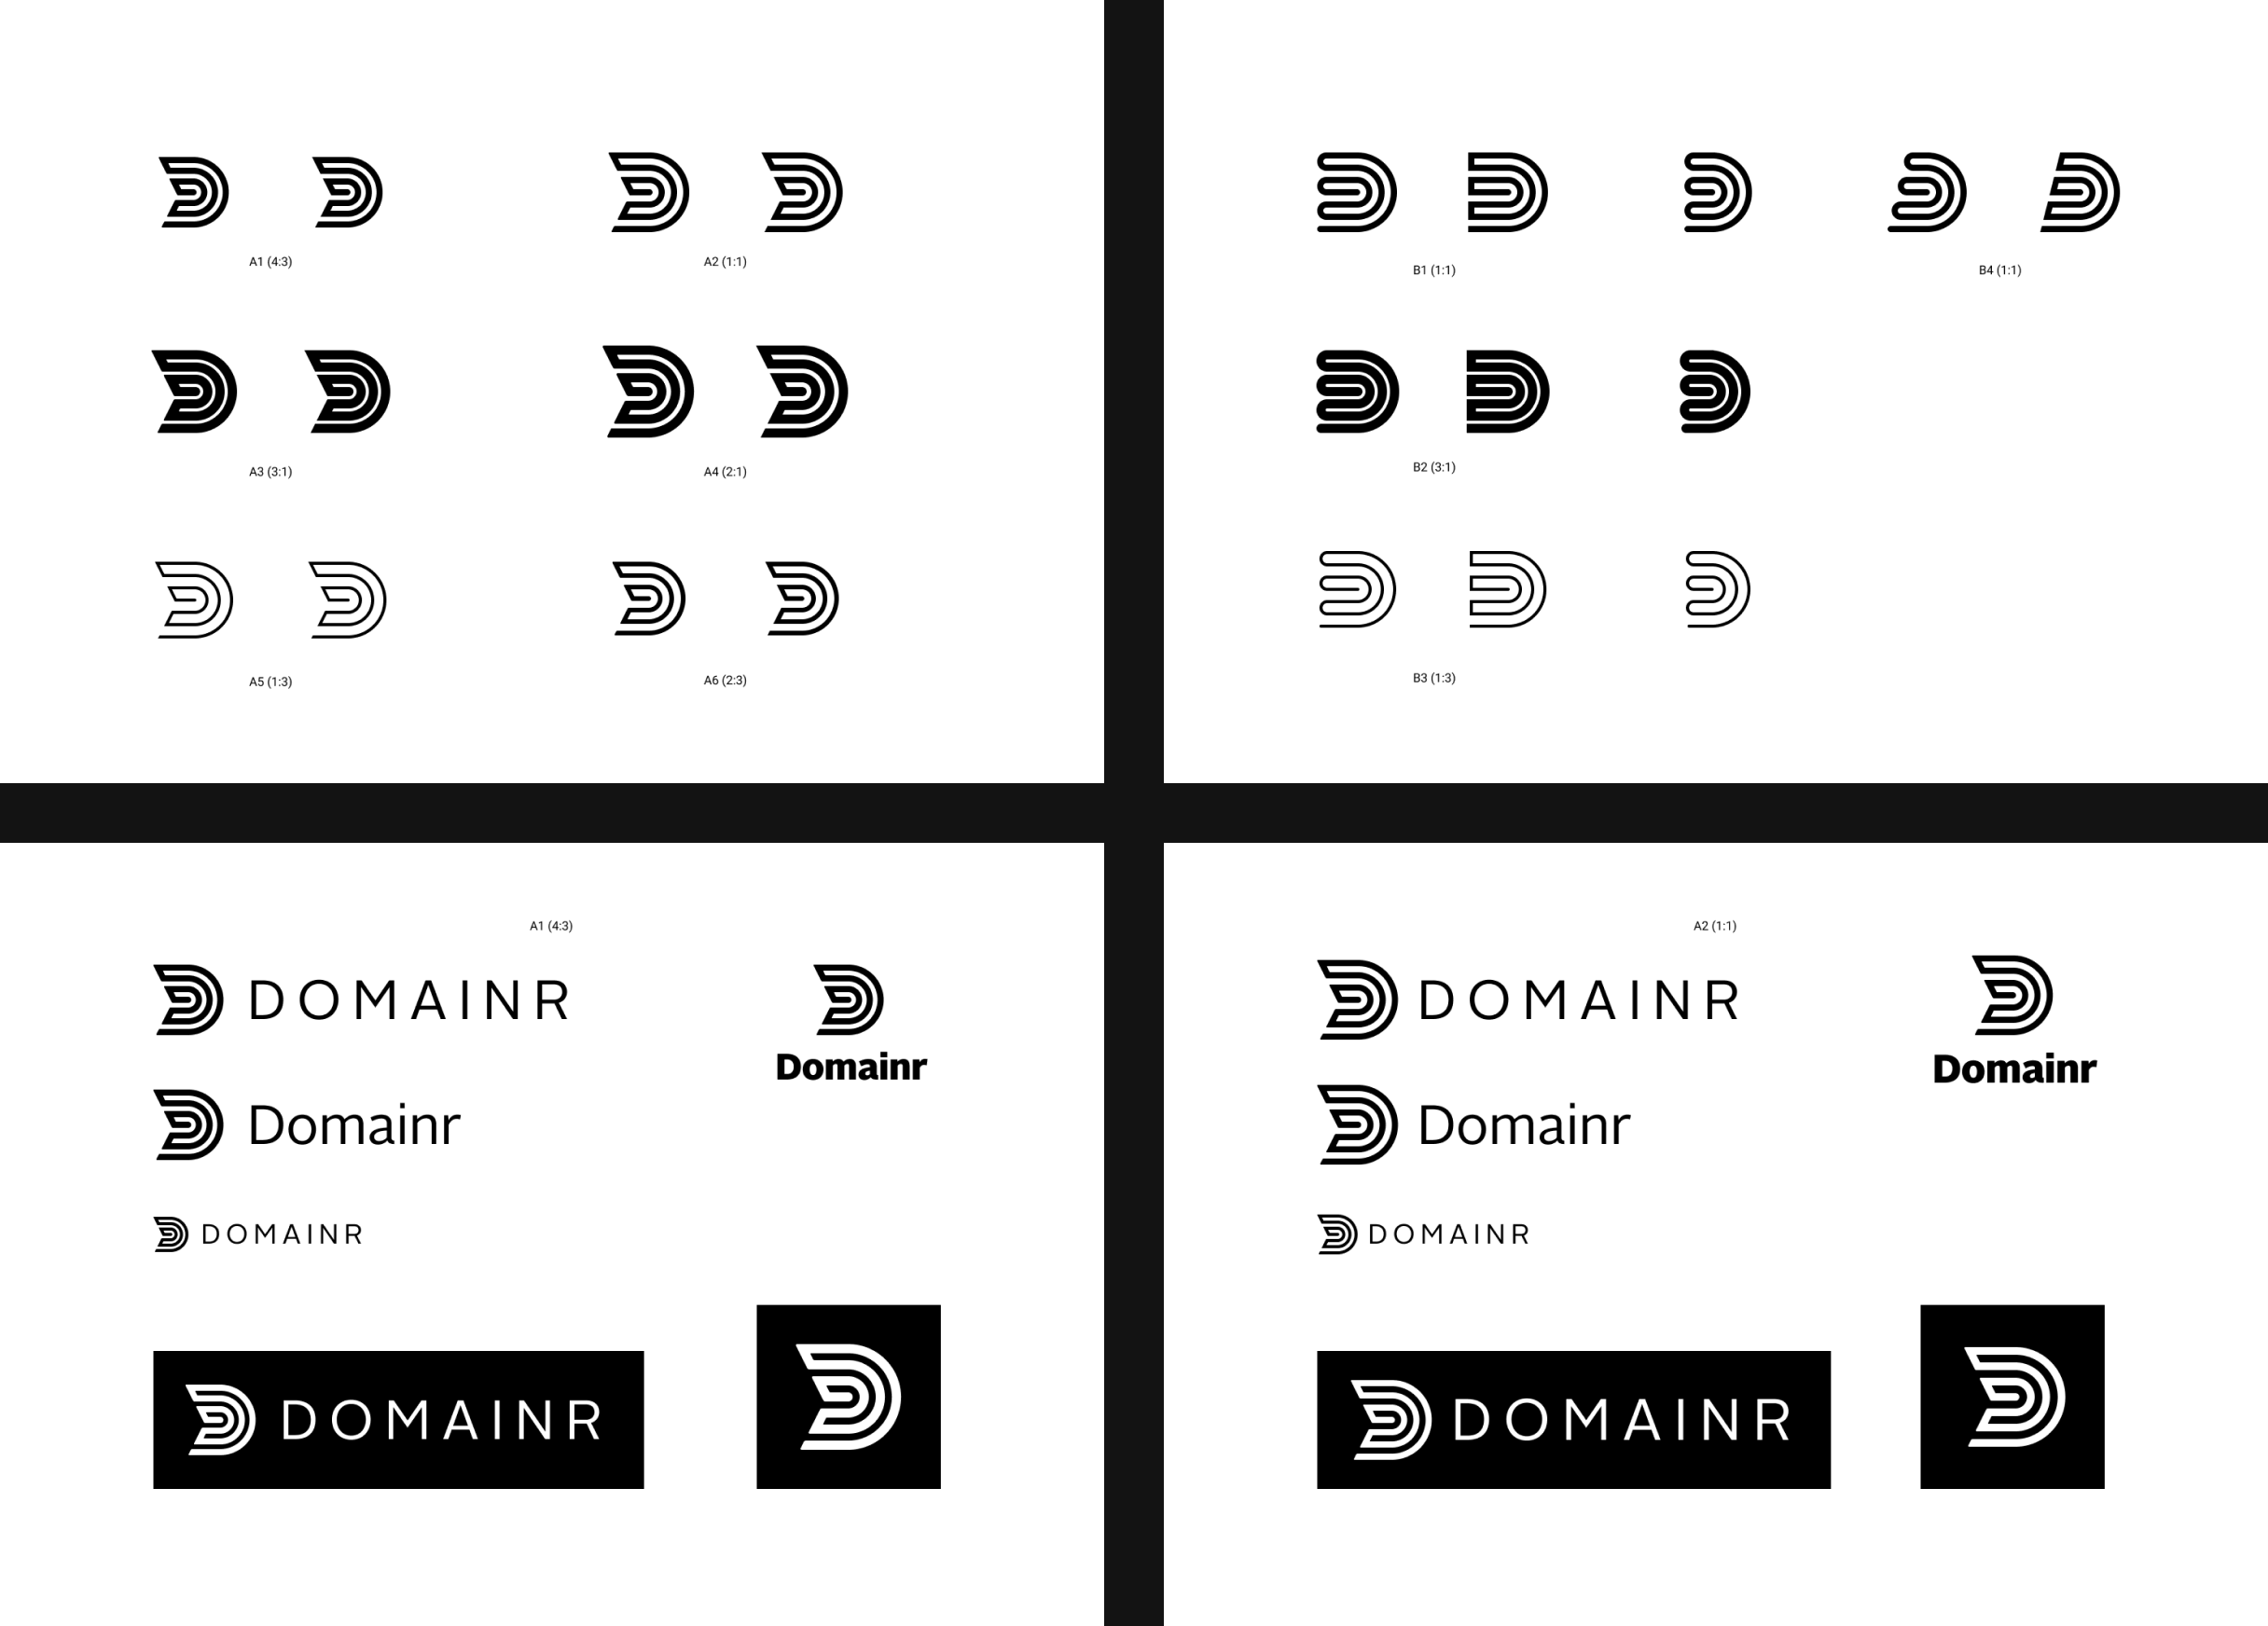 Explorations of Domainr logo variants